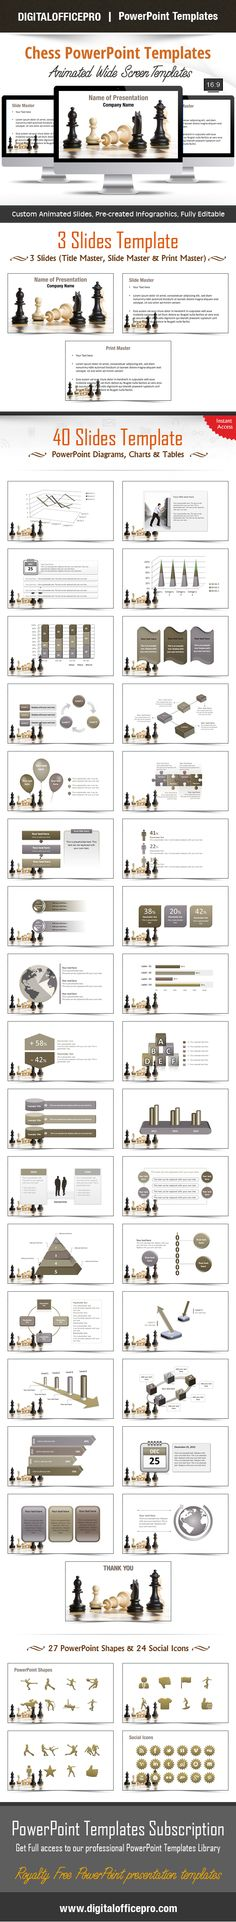 Security Officer PowerPoint Template Backgrounds - office powerpoint template